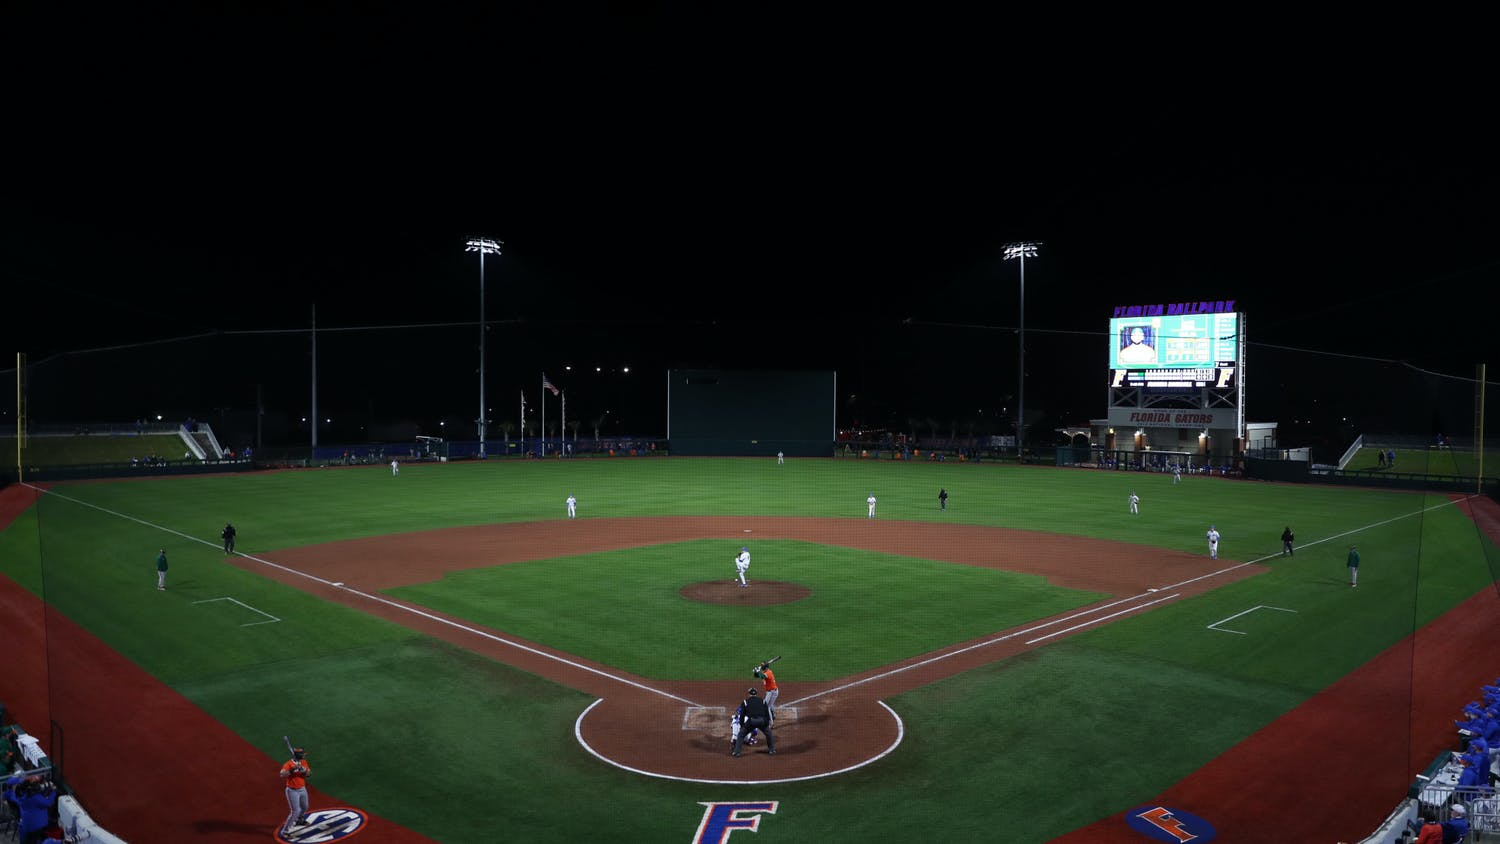 The Gators won Friday's opening game in the new Florida Ballpark. Photo courtesy of the UAA.